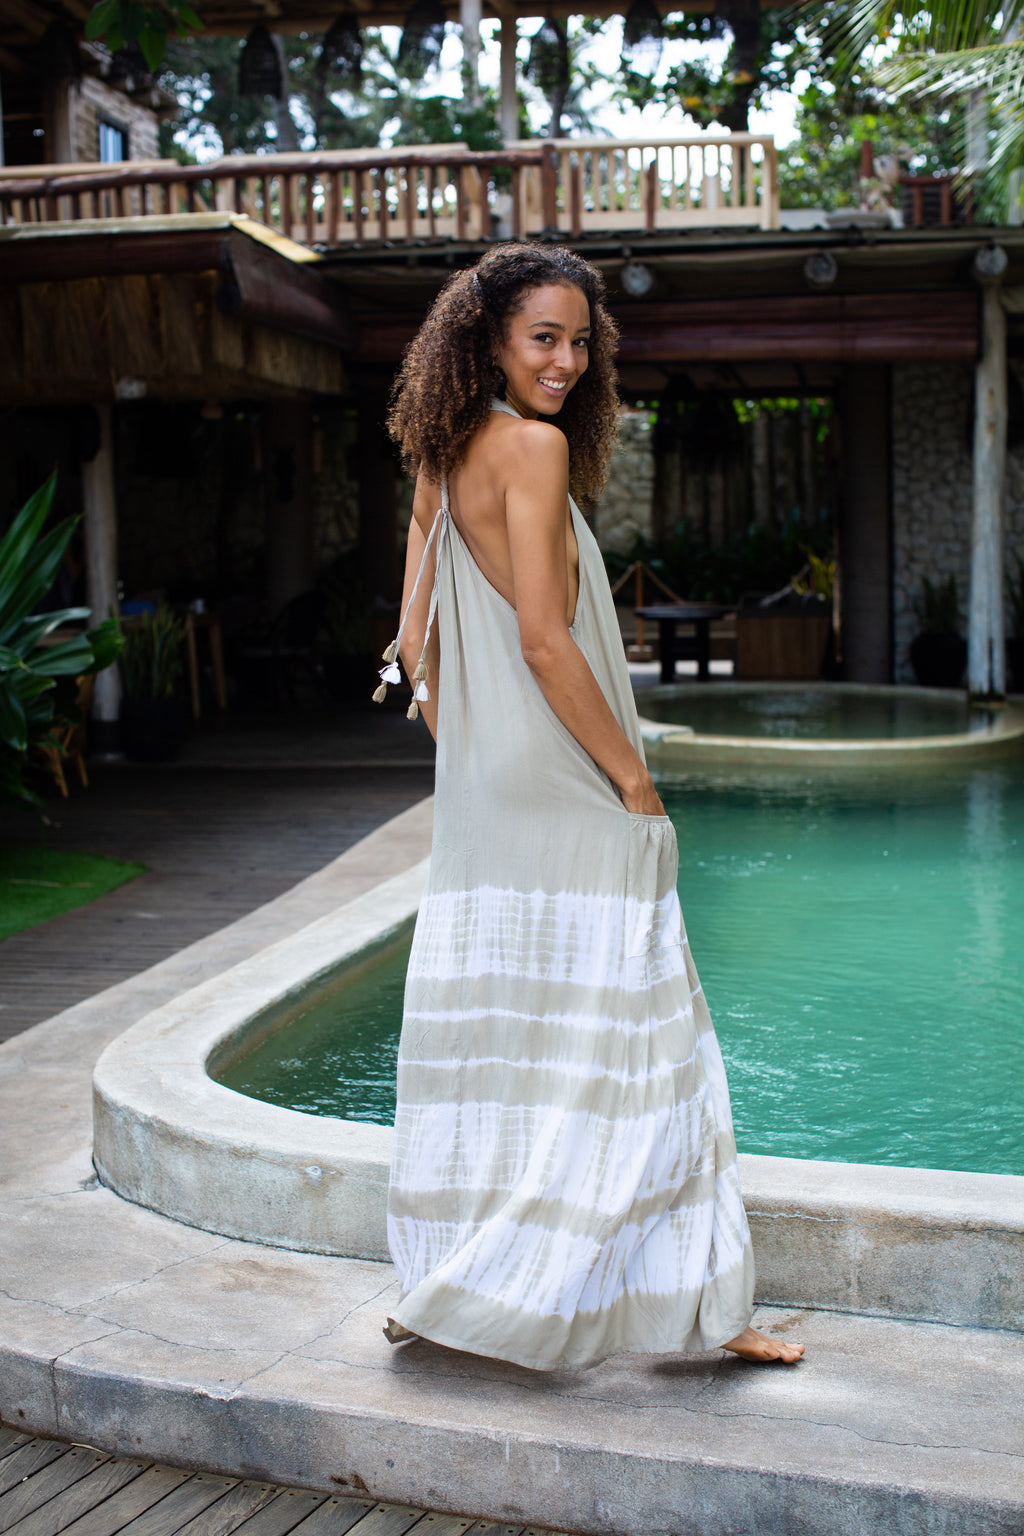 Bali Queen, Coco Rose, Resort Wear, Pool Wear, Bathing suit coverup, summer, summer style, boutique, bali, travel, boho style, genie, Malibu, tie dye, maxi dress, sundress